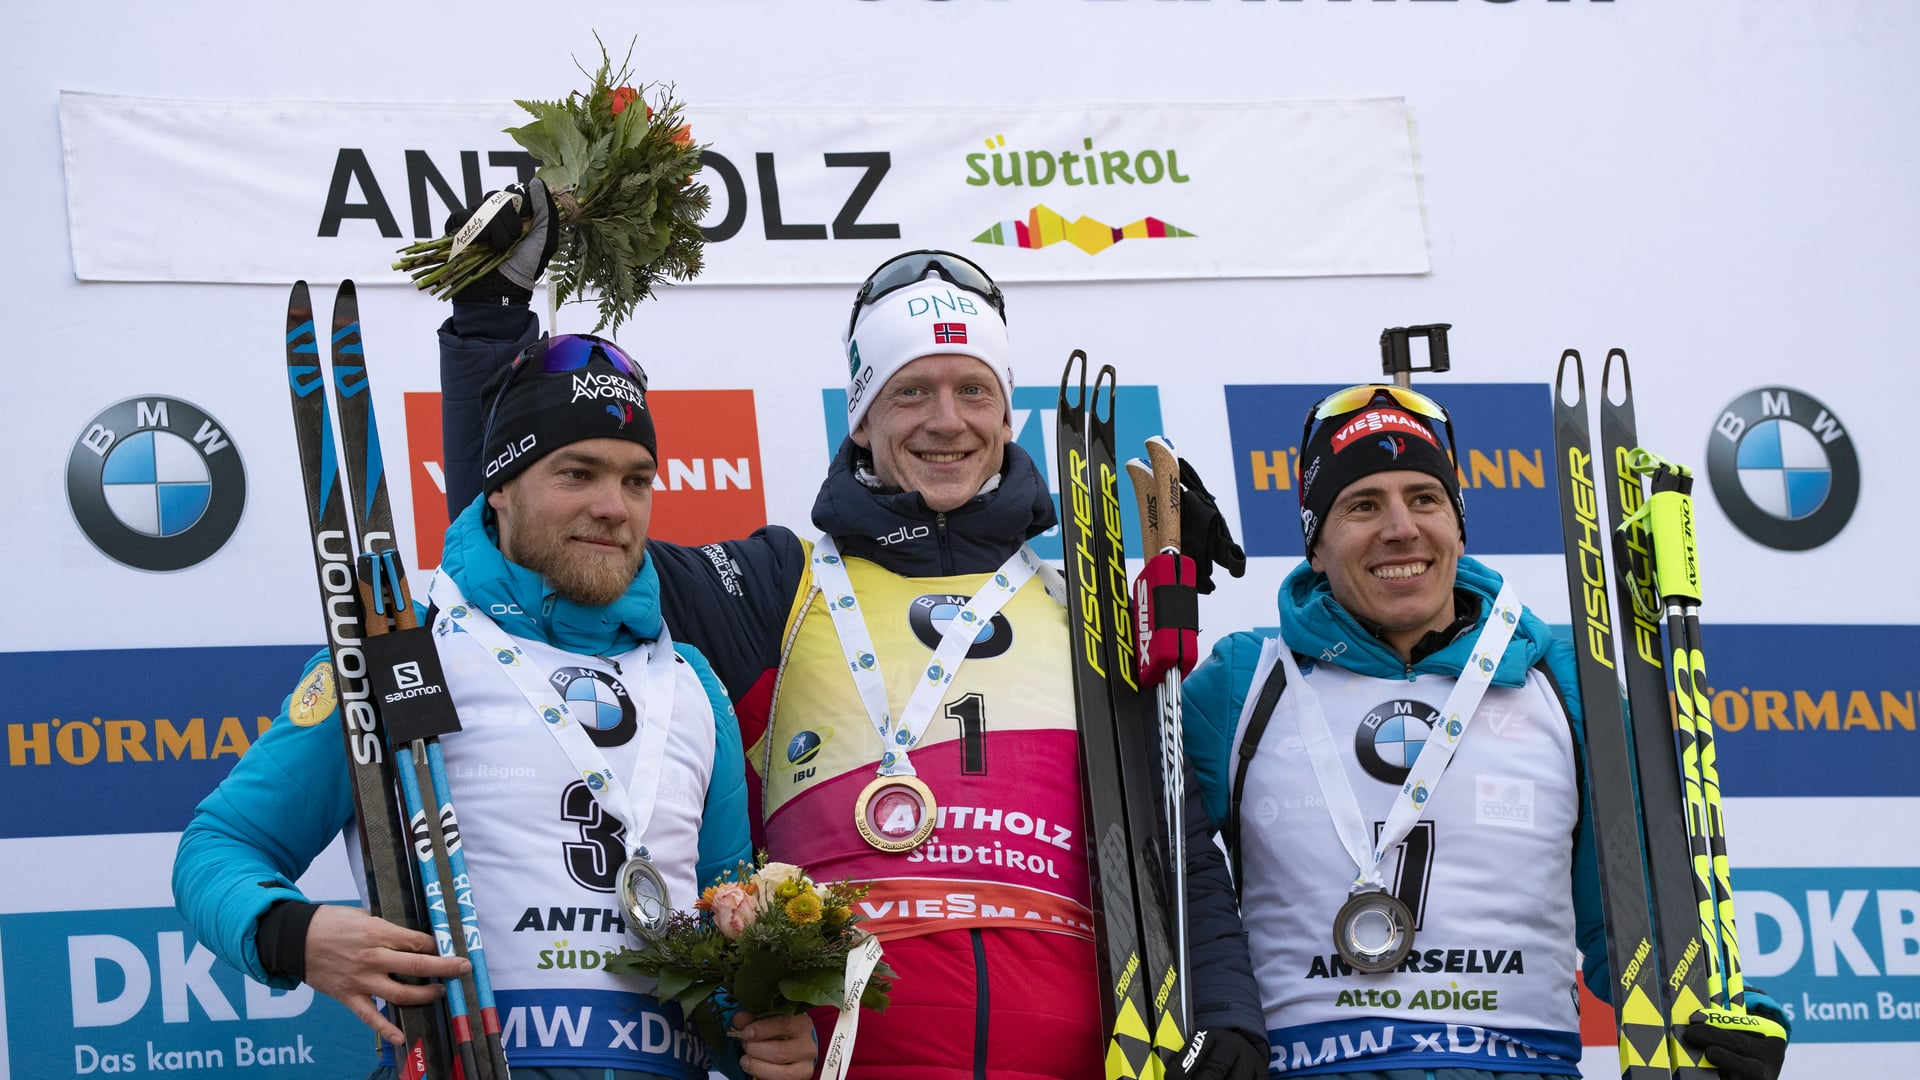 26.01.2019 - Johannes Thingnes Bø becomes the King of Anterselva